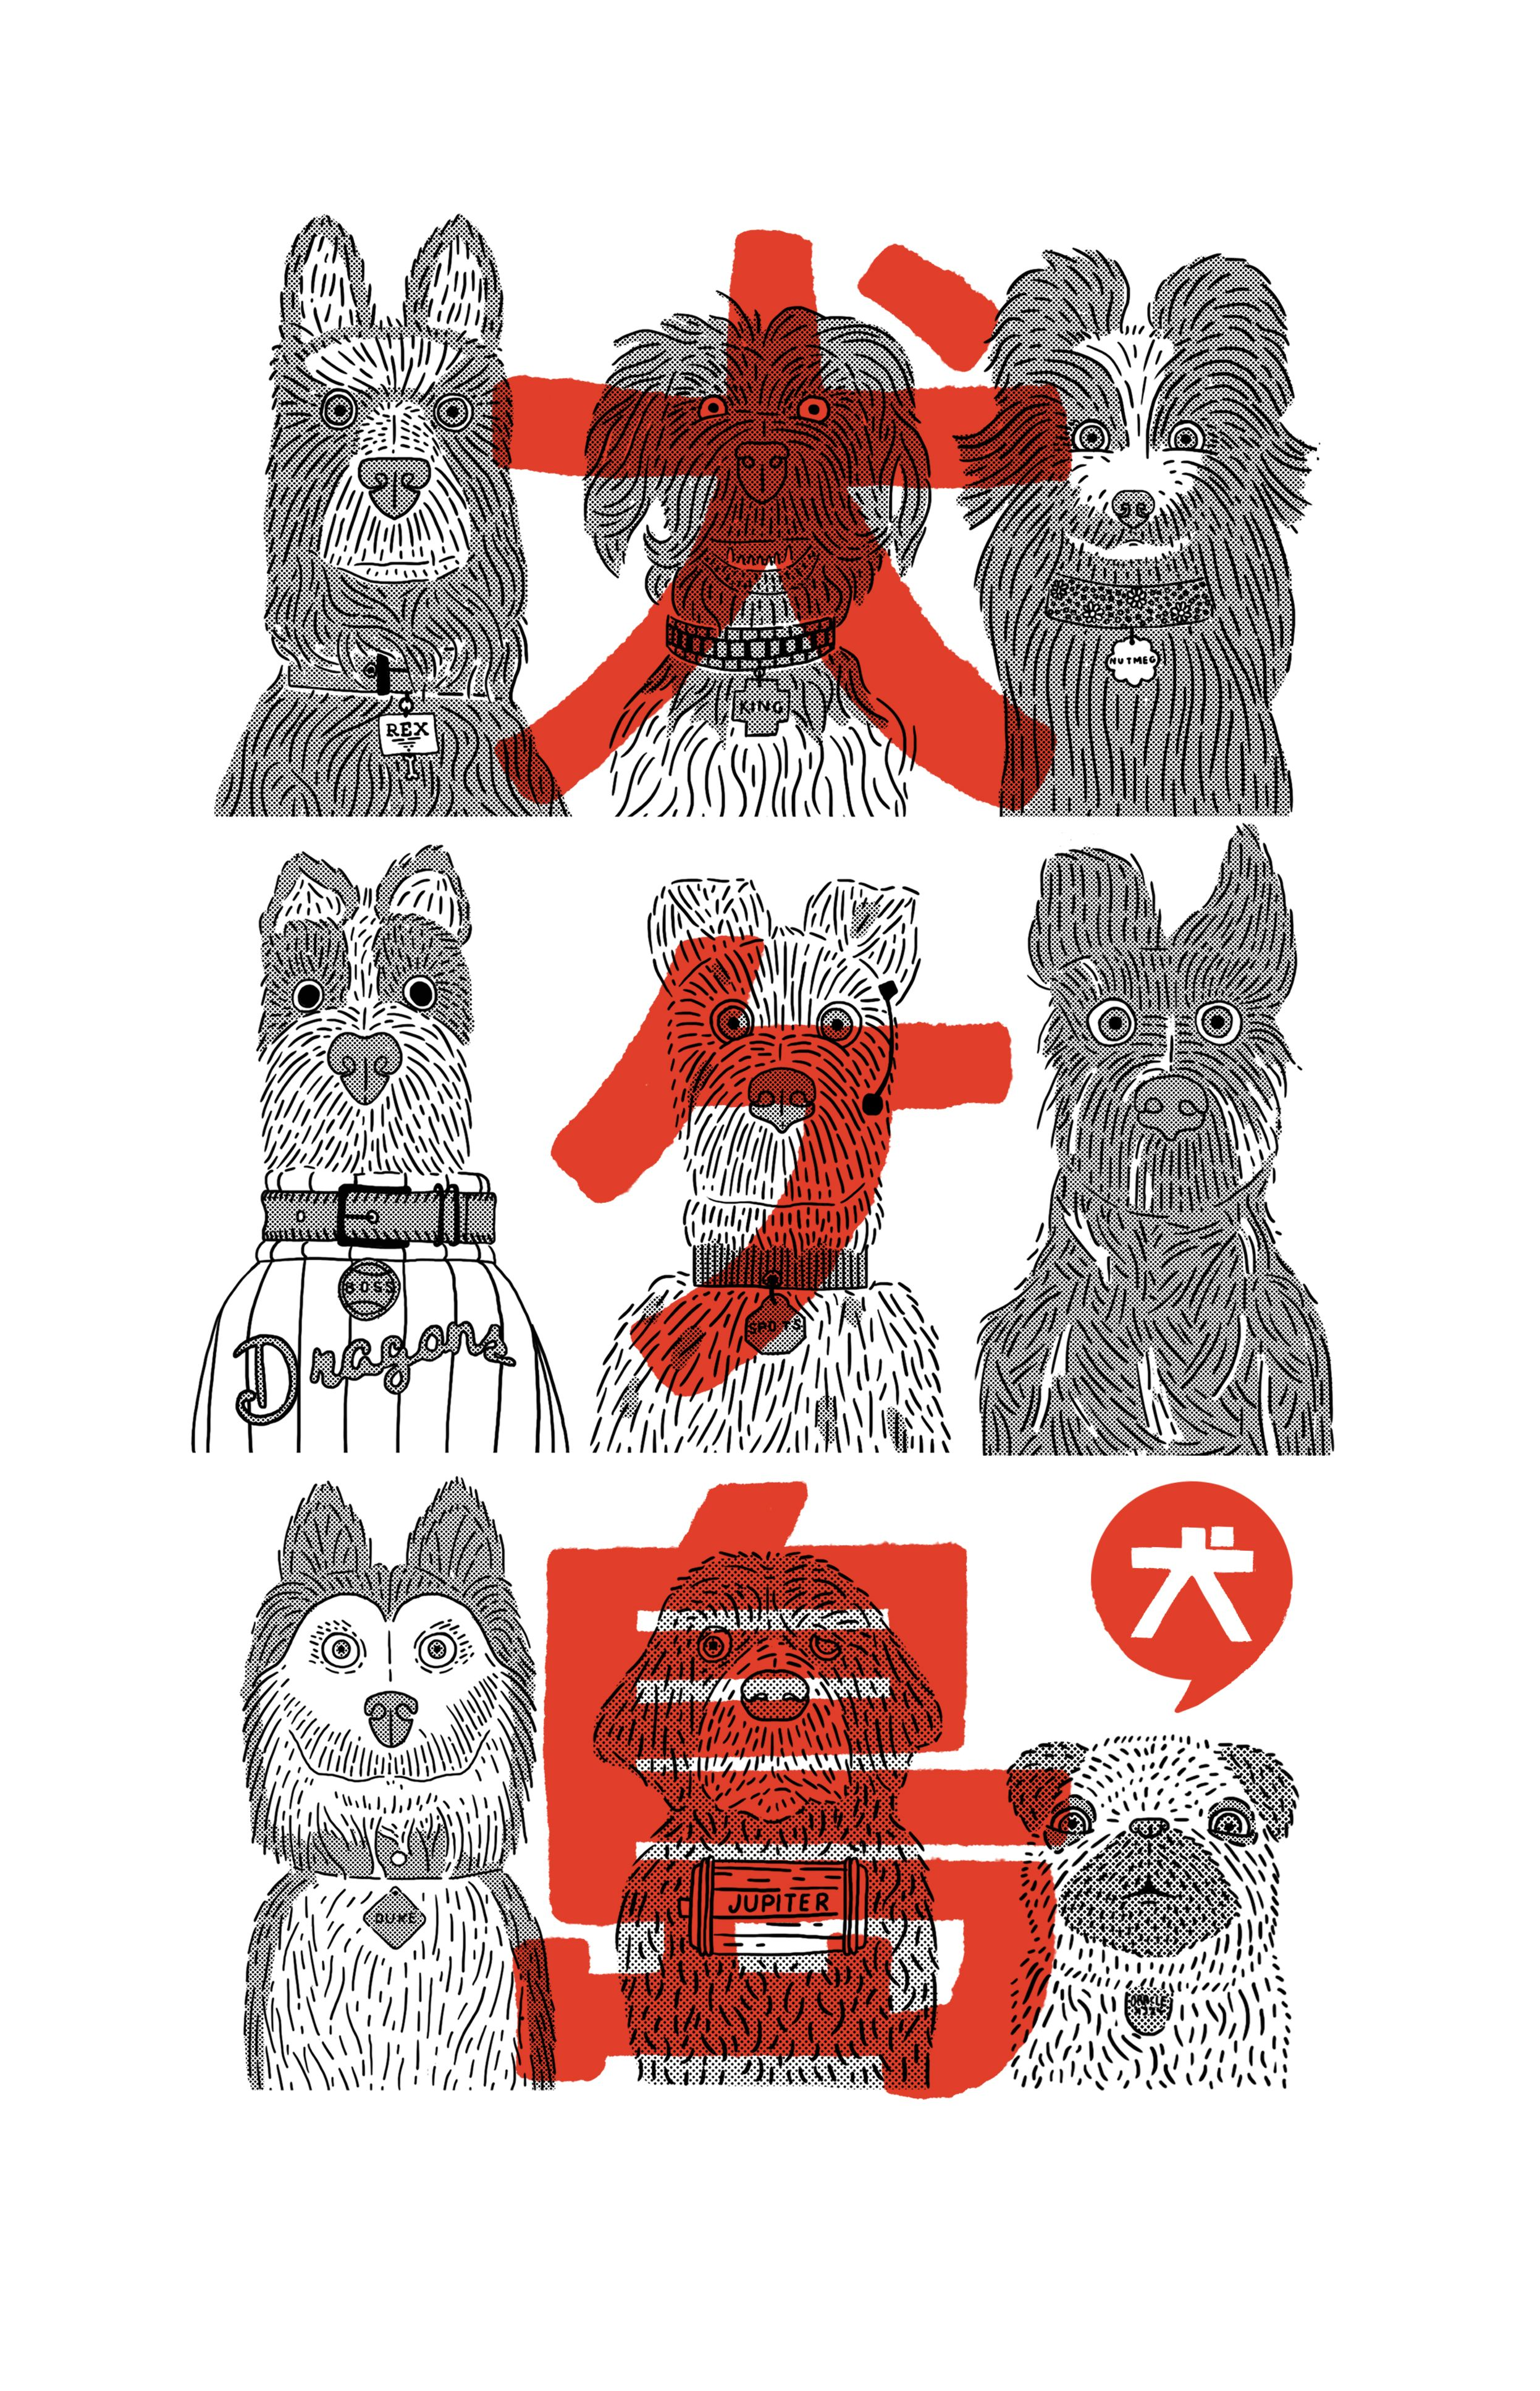 Isle of Dogs   Wes Anderson graphic design in 2019 Isle of 2493x3870